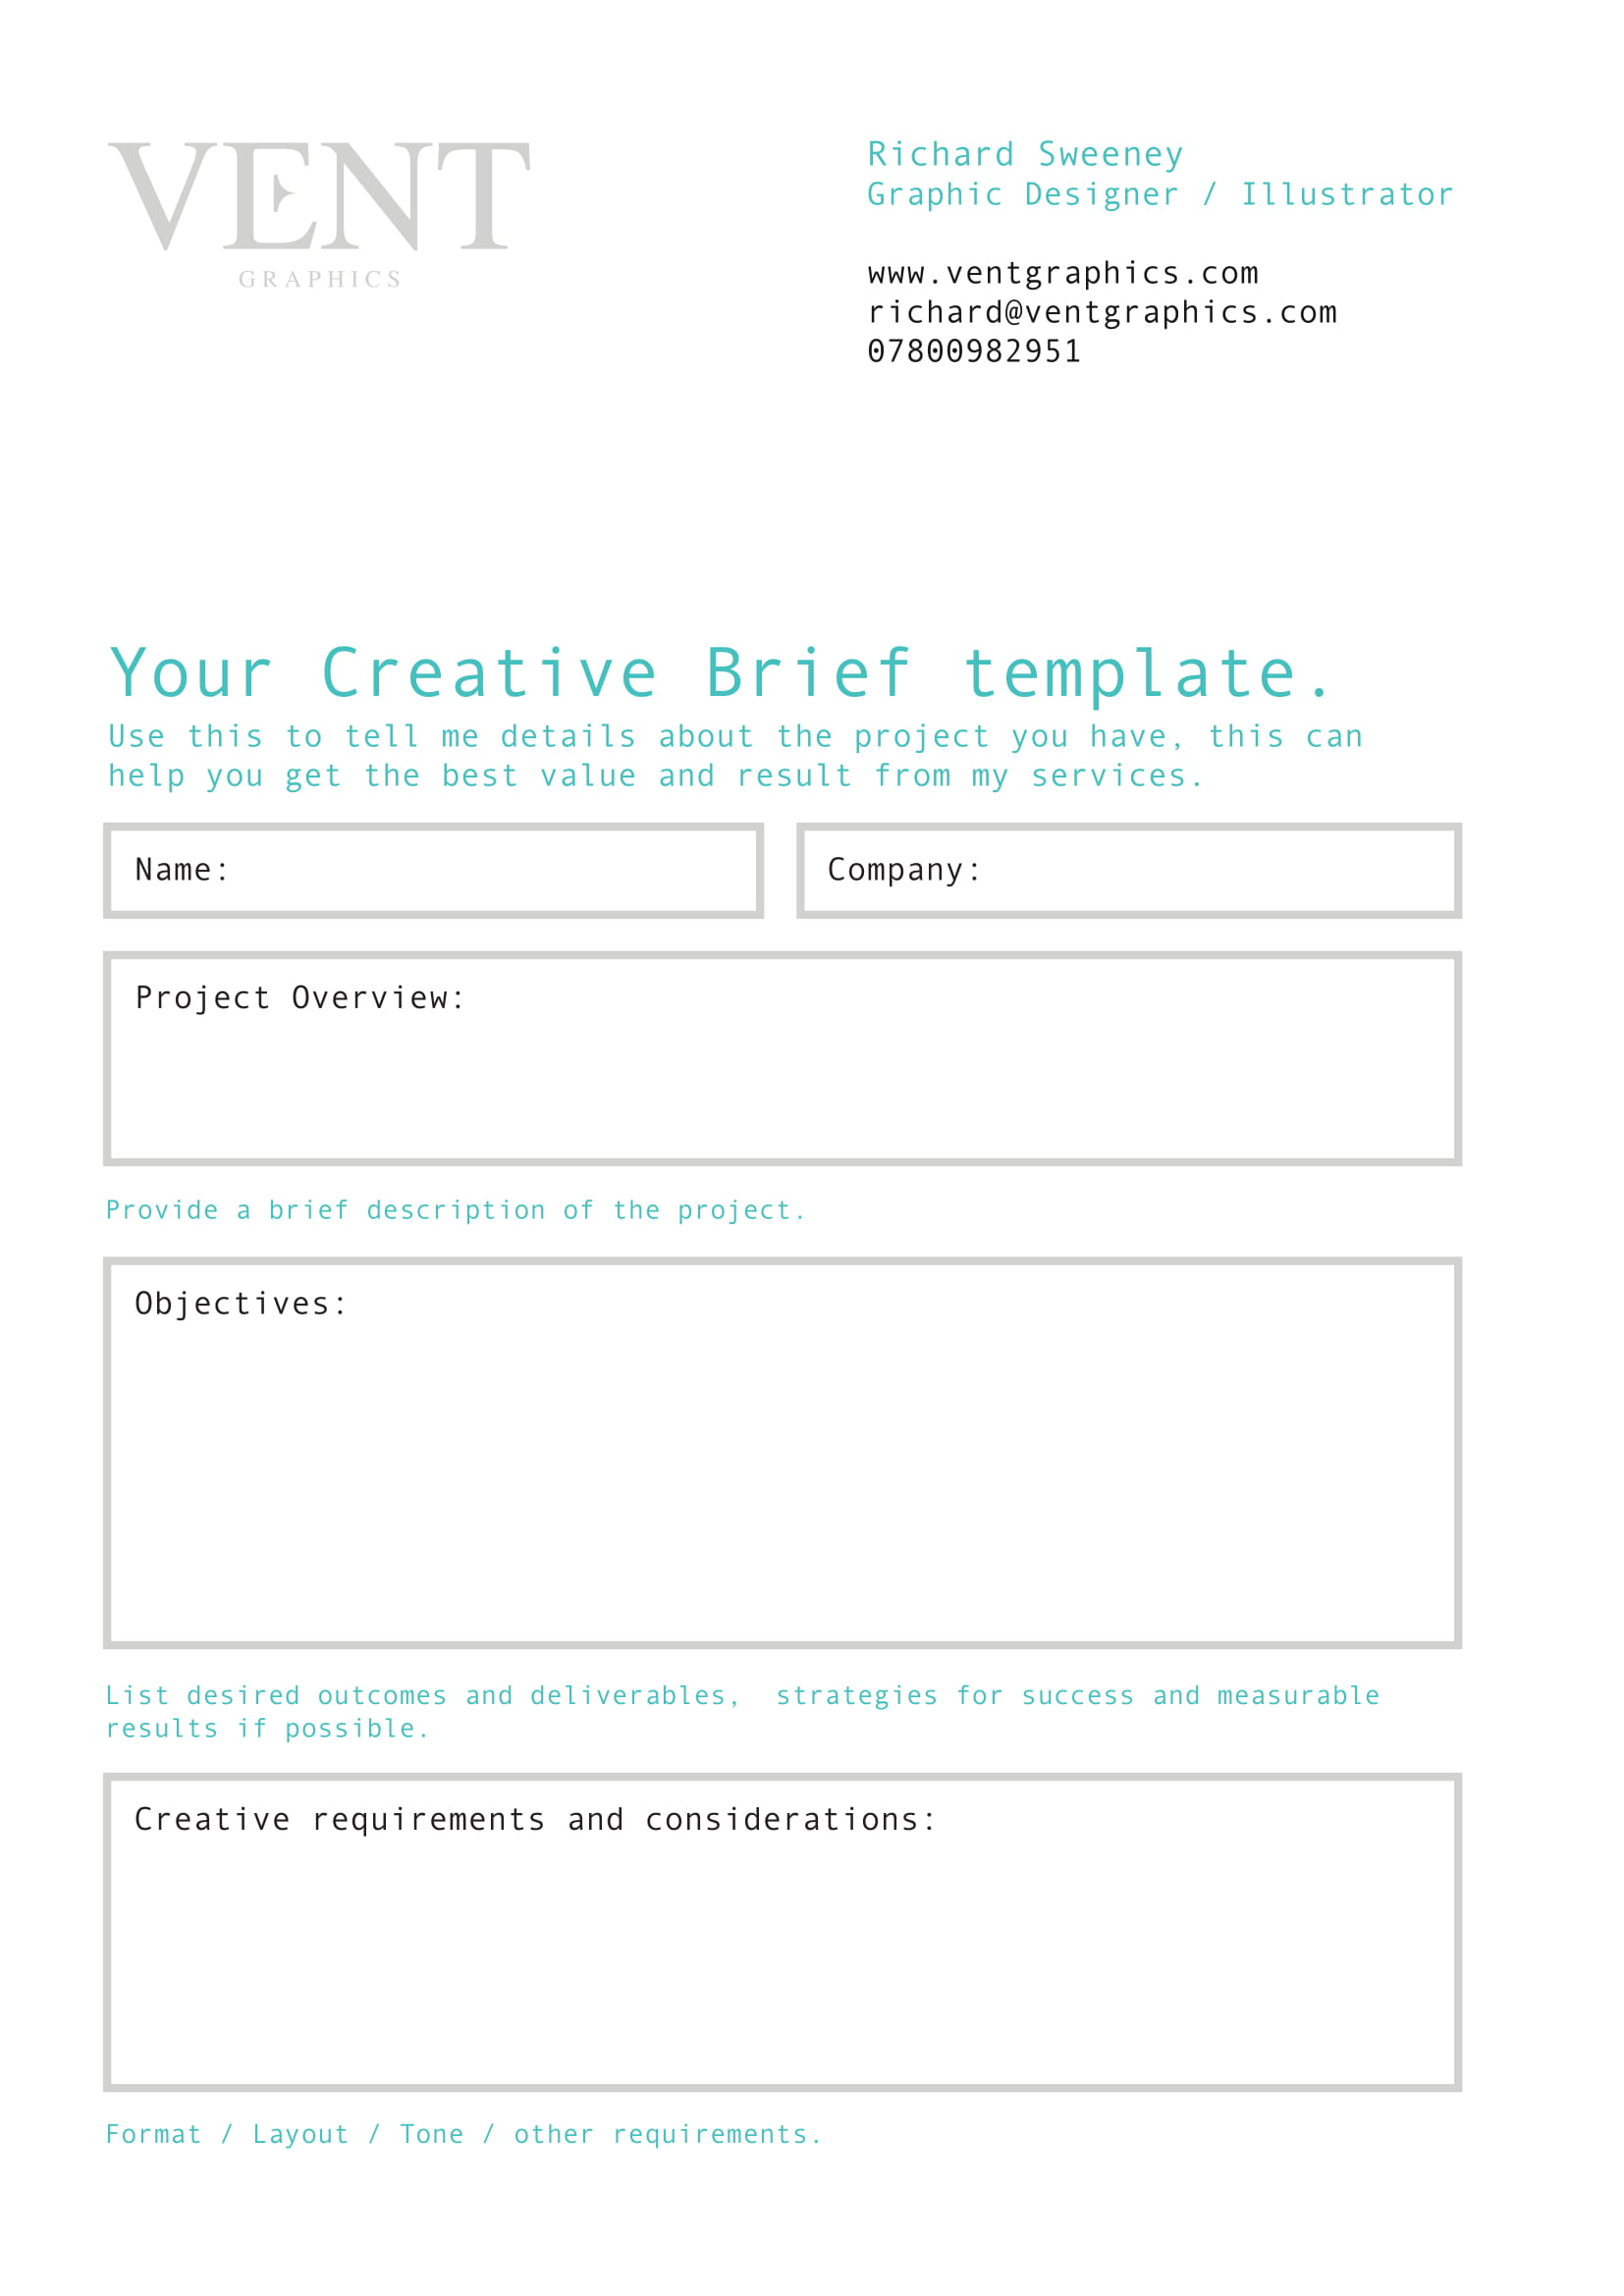 creative brief template example2